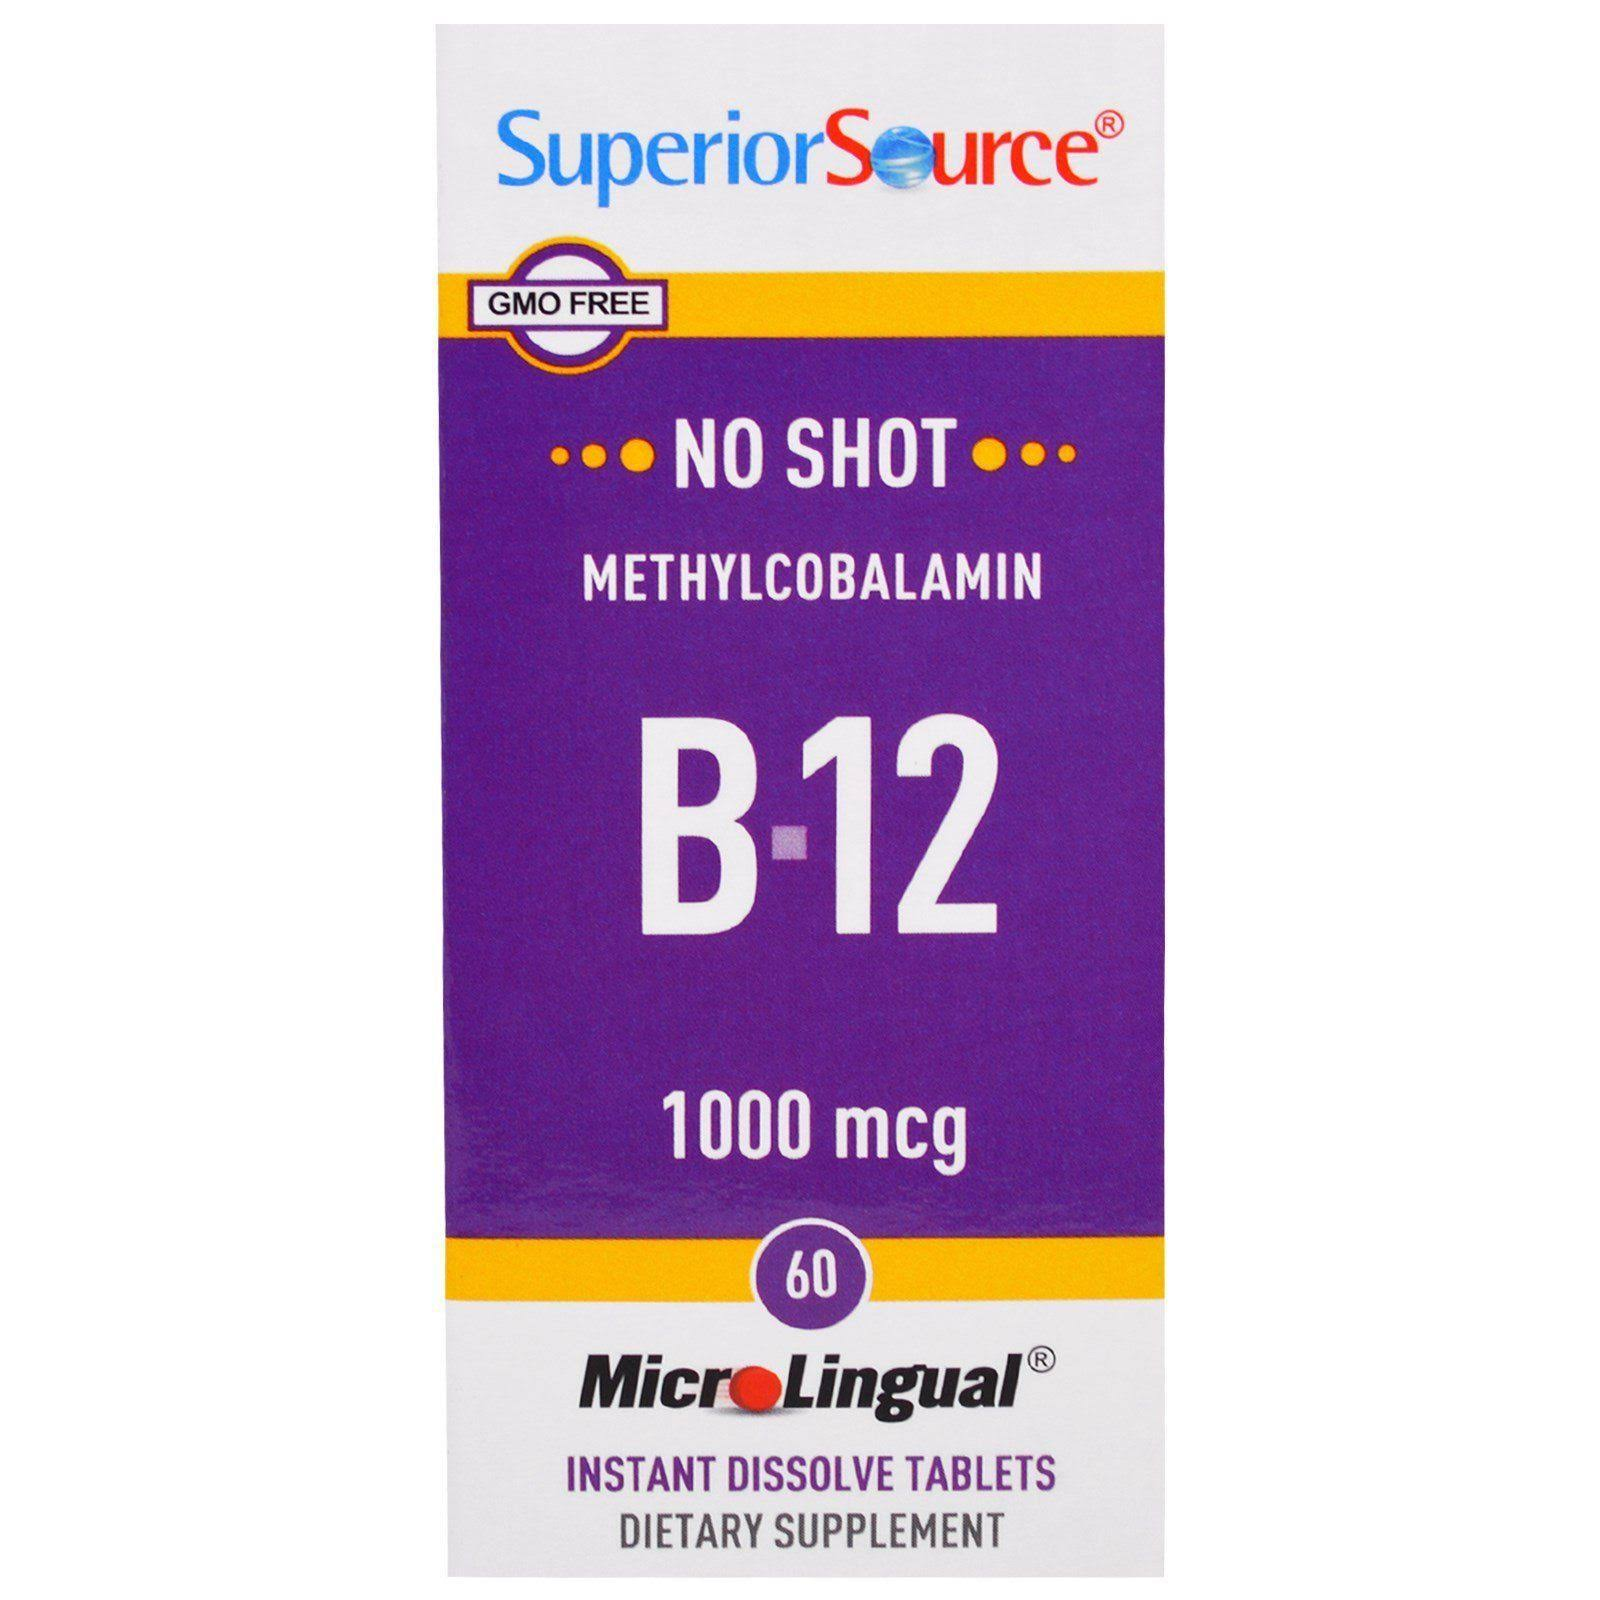 Superior Source Methylcobalamin B-12 - 1000mcg, 60 Instant Dissolve Tablets